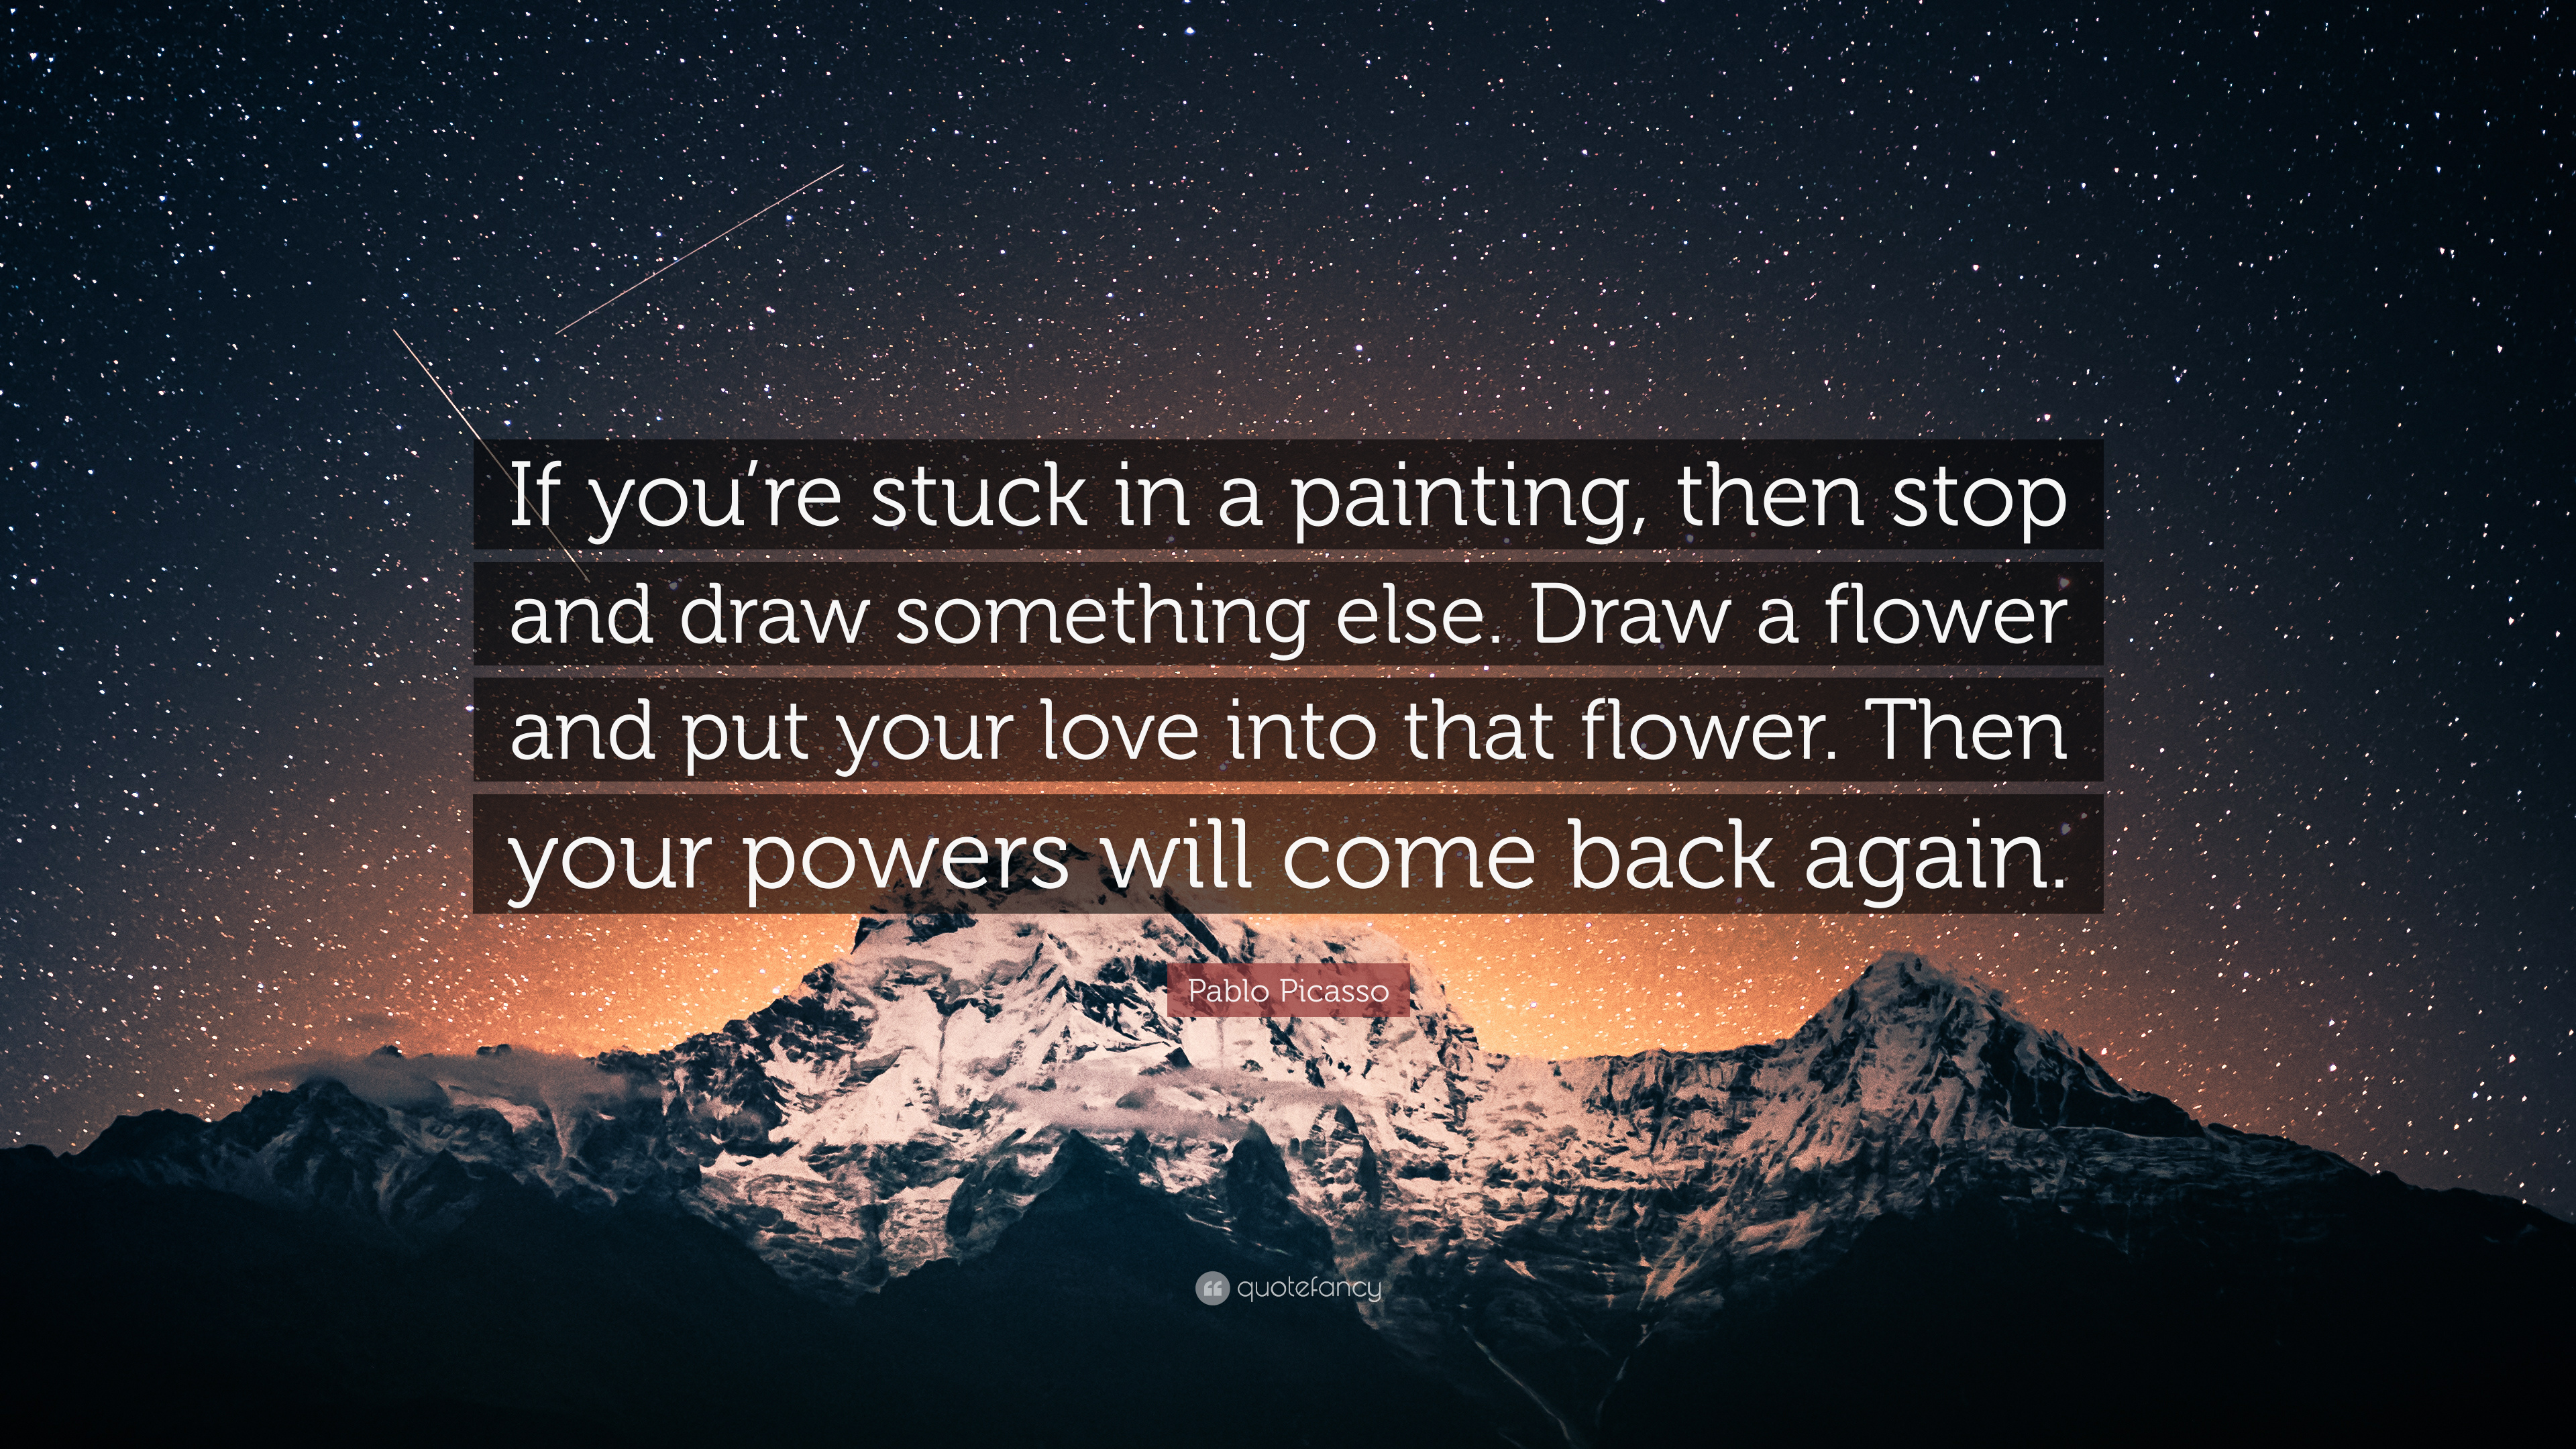 Simple Wallpaper Love Painting - 2232524-Pablo-Picasso-Quote-If-you-re-stuck-in-a-painting-then-stop-and  Best Photo Reference_402979.jpg